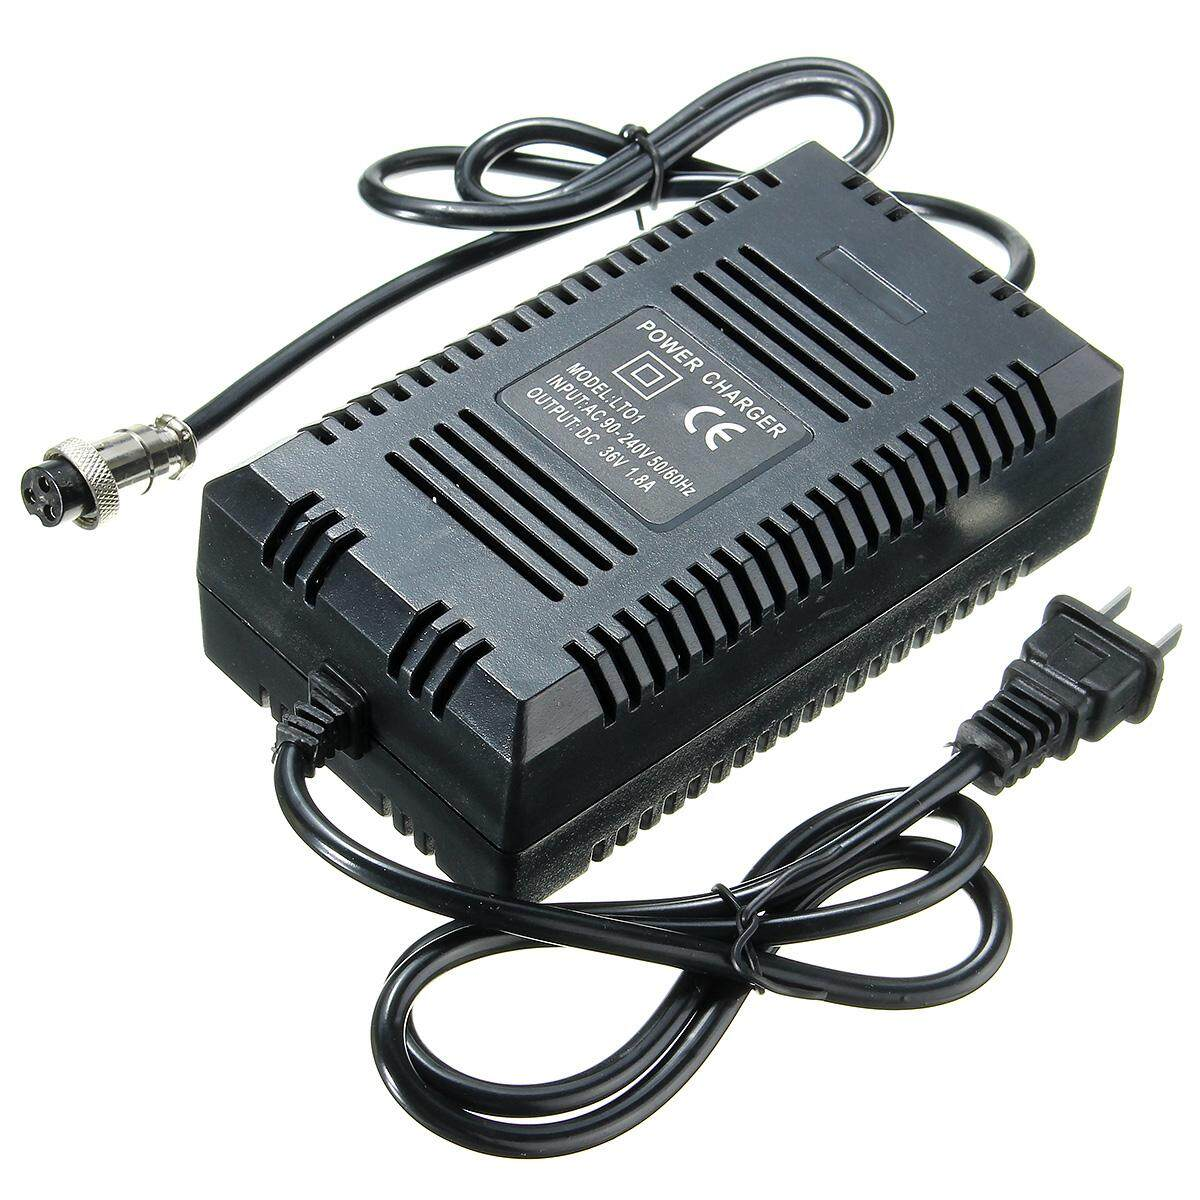 36v Dc 1.6a - 1.8a Amp Battery Charger With Plug For Electric Scooter Bike New By Autoleader.